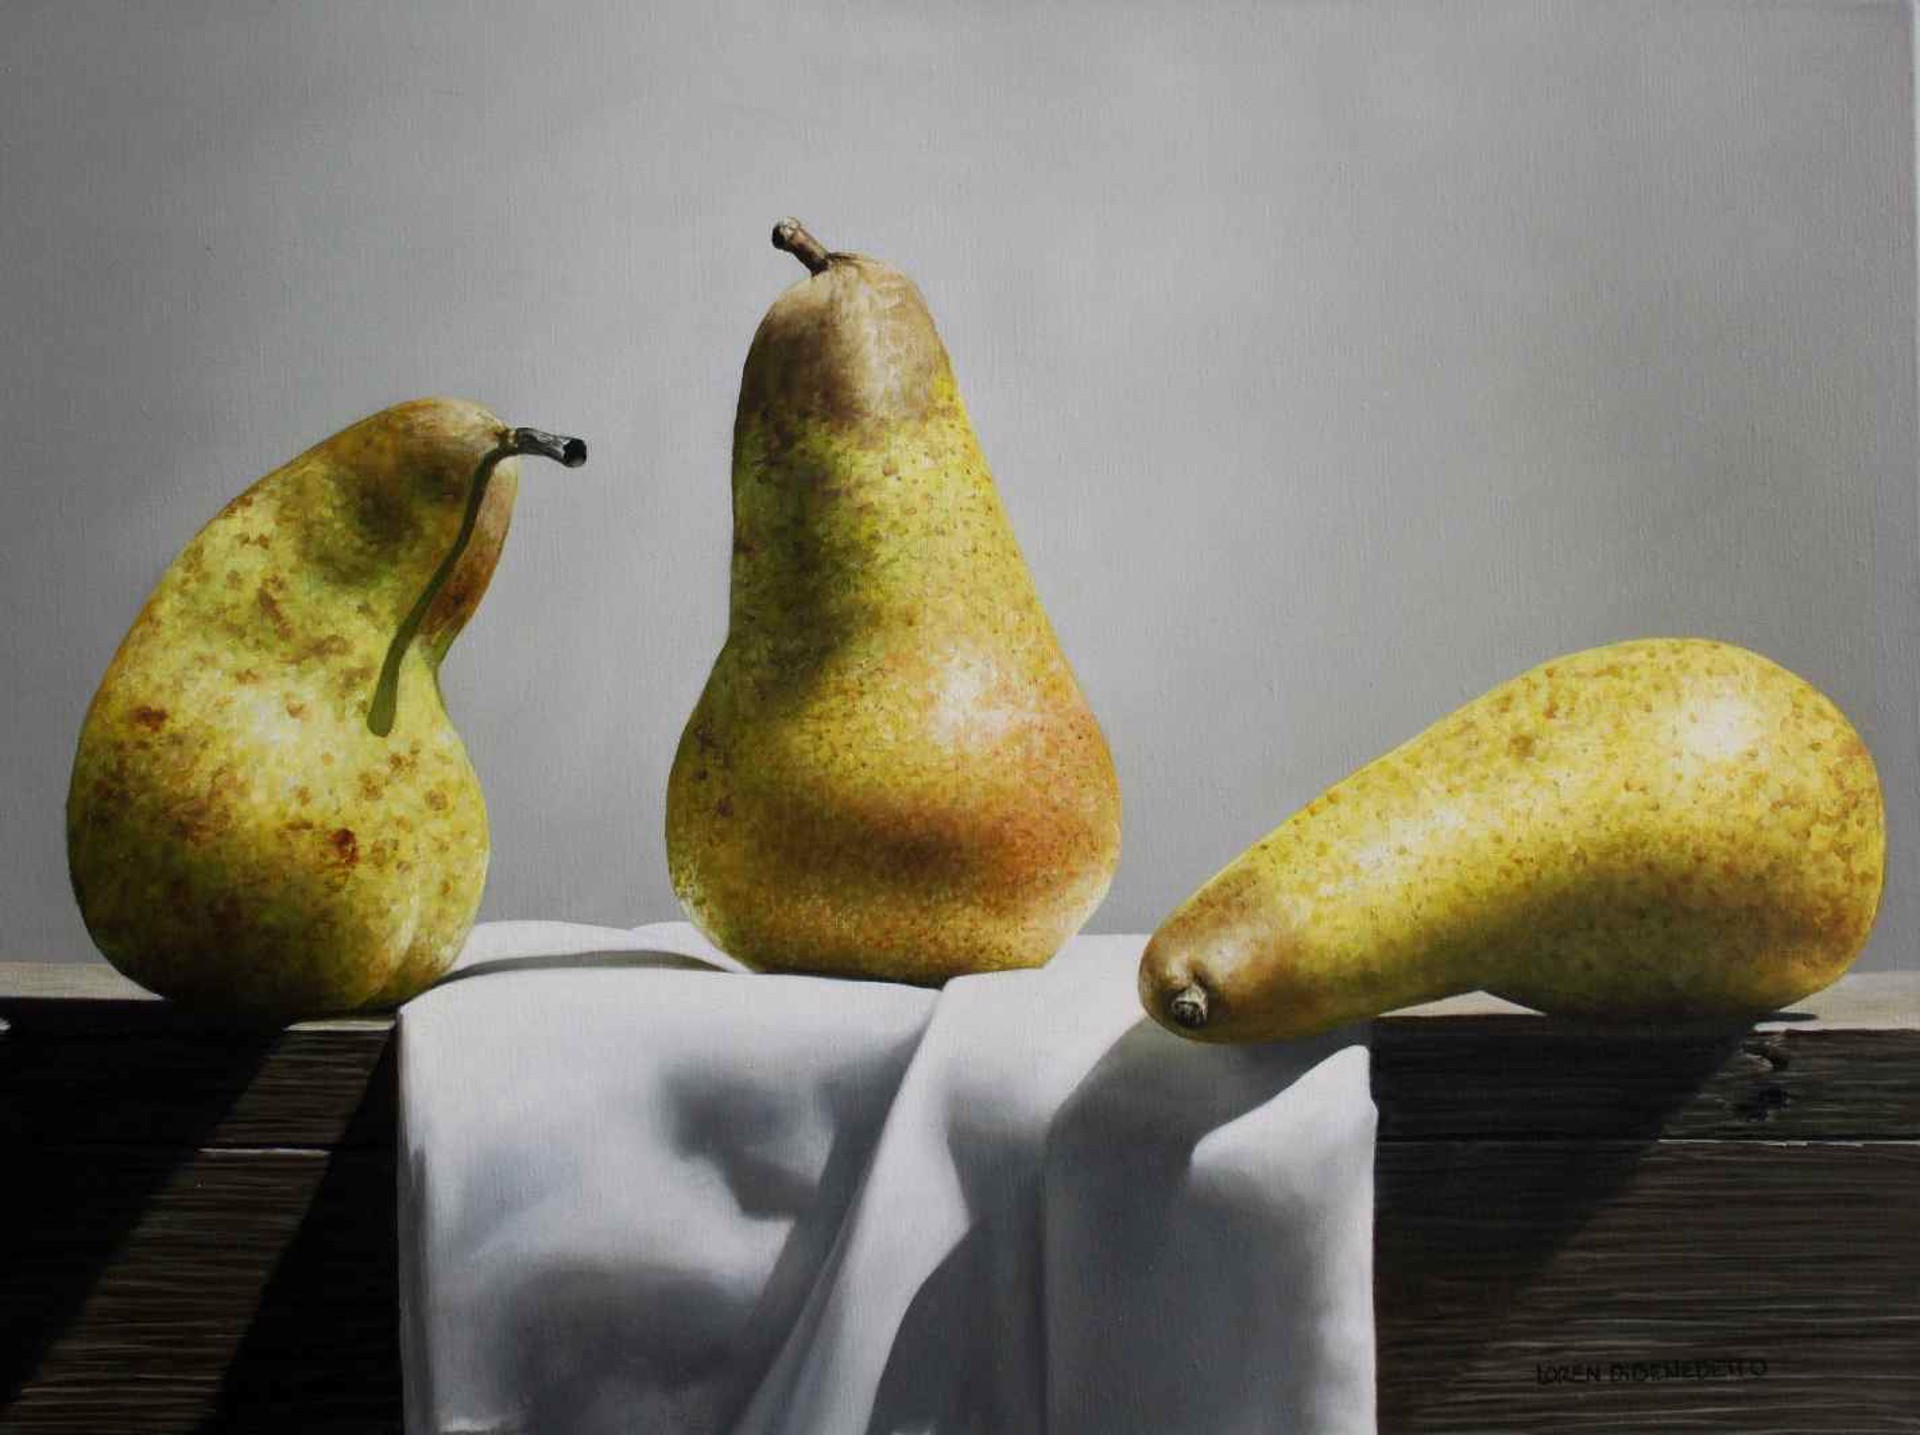 Pears On Folded Cloth by Loren DiBenedetto